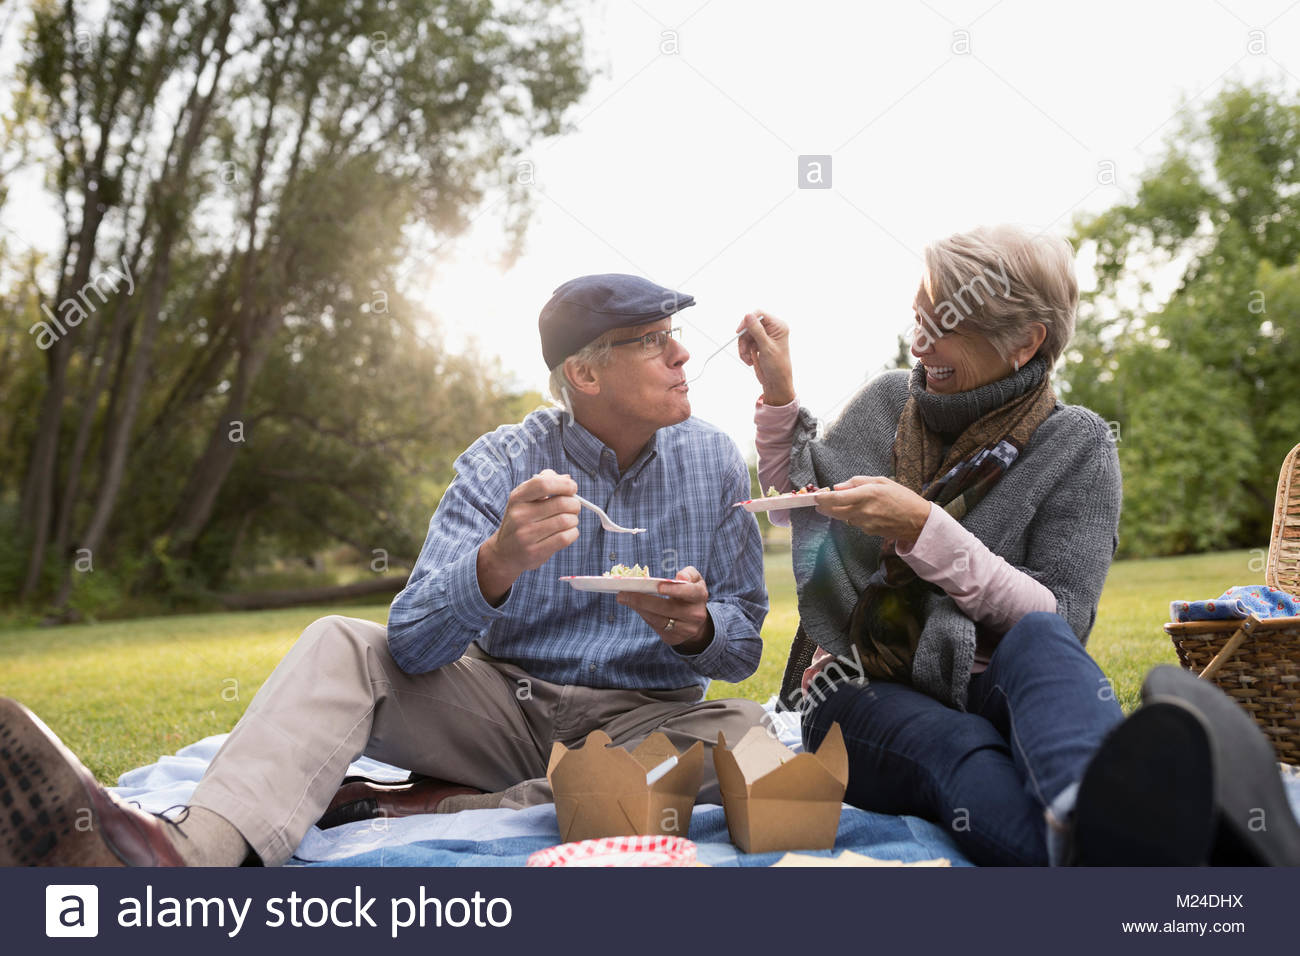 Senior couple eating, enjoying picnic in park - Stock Image